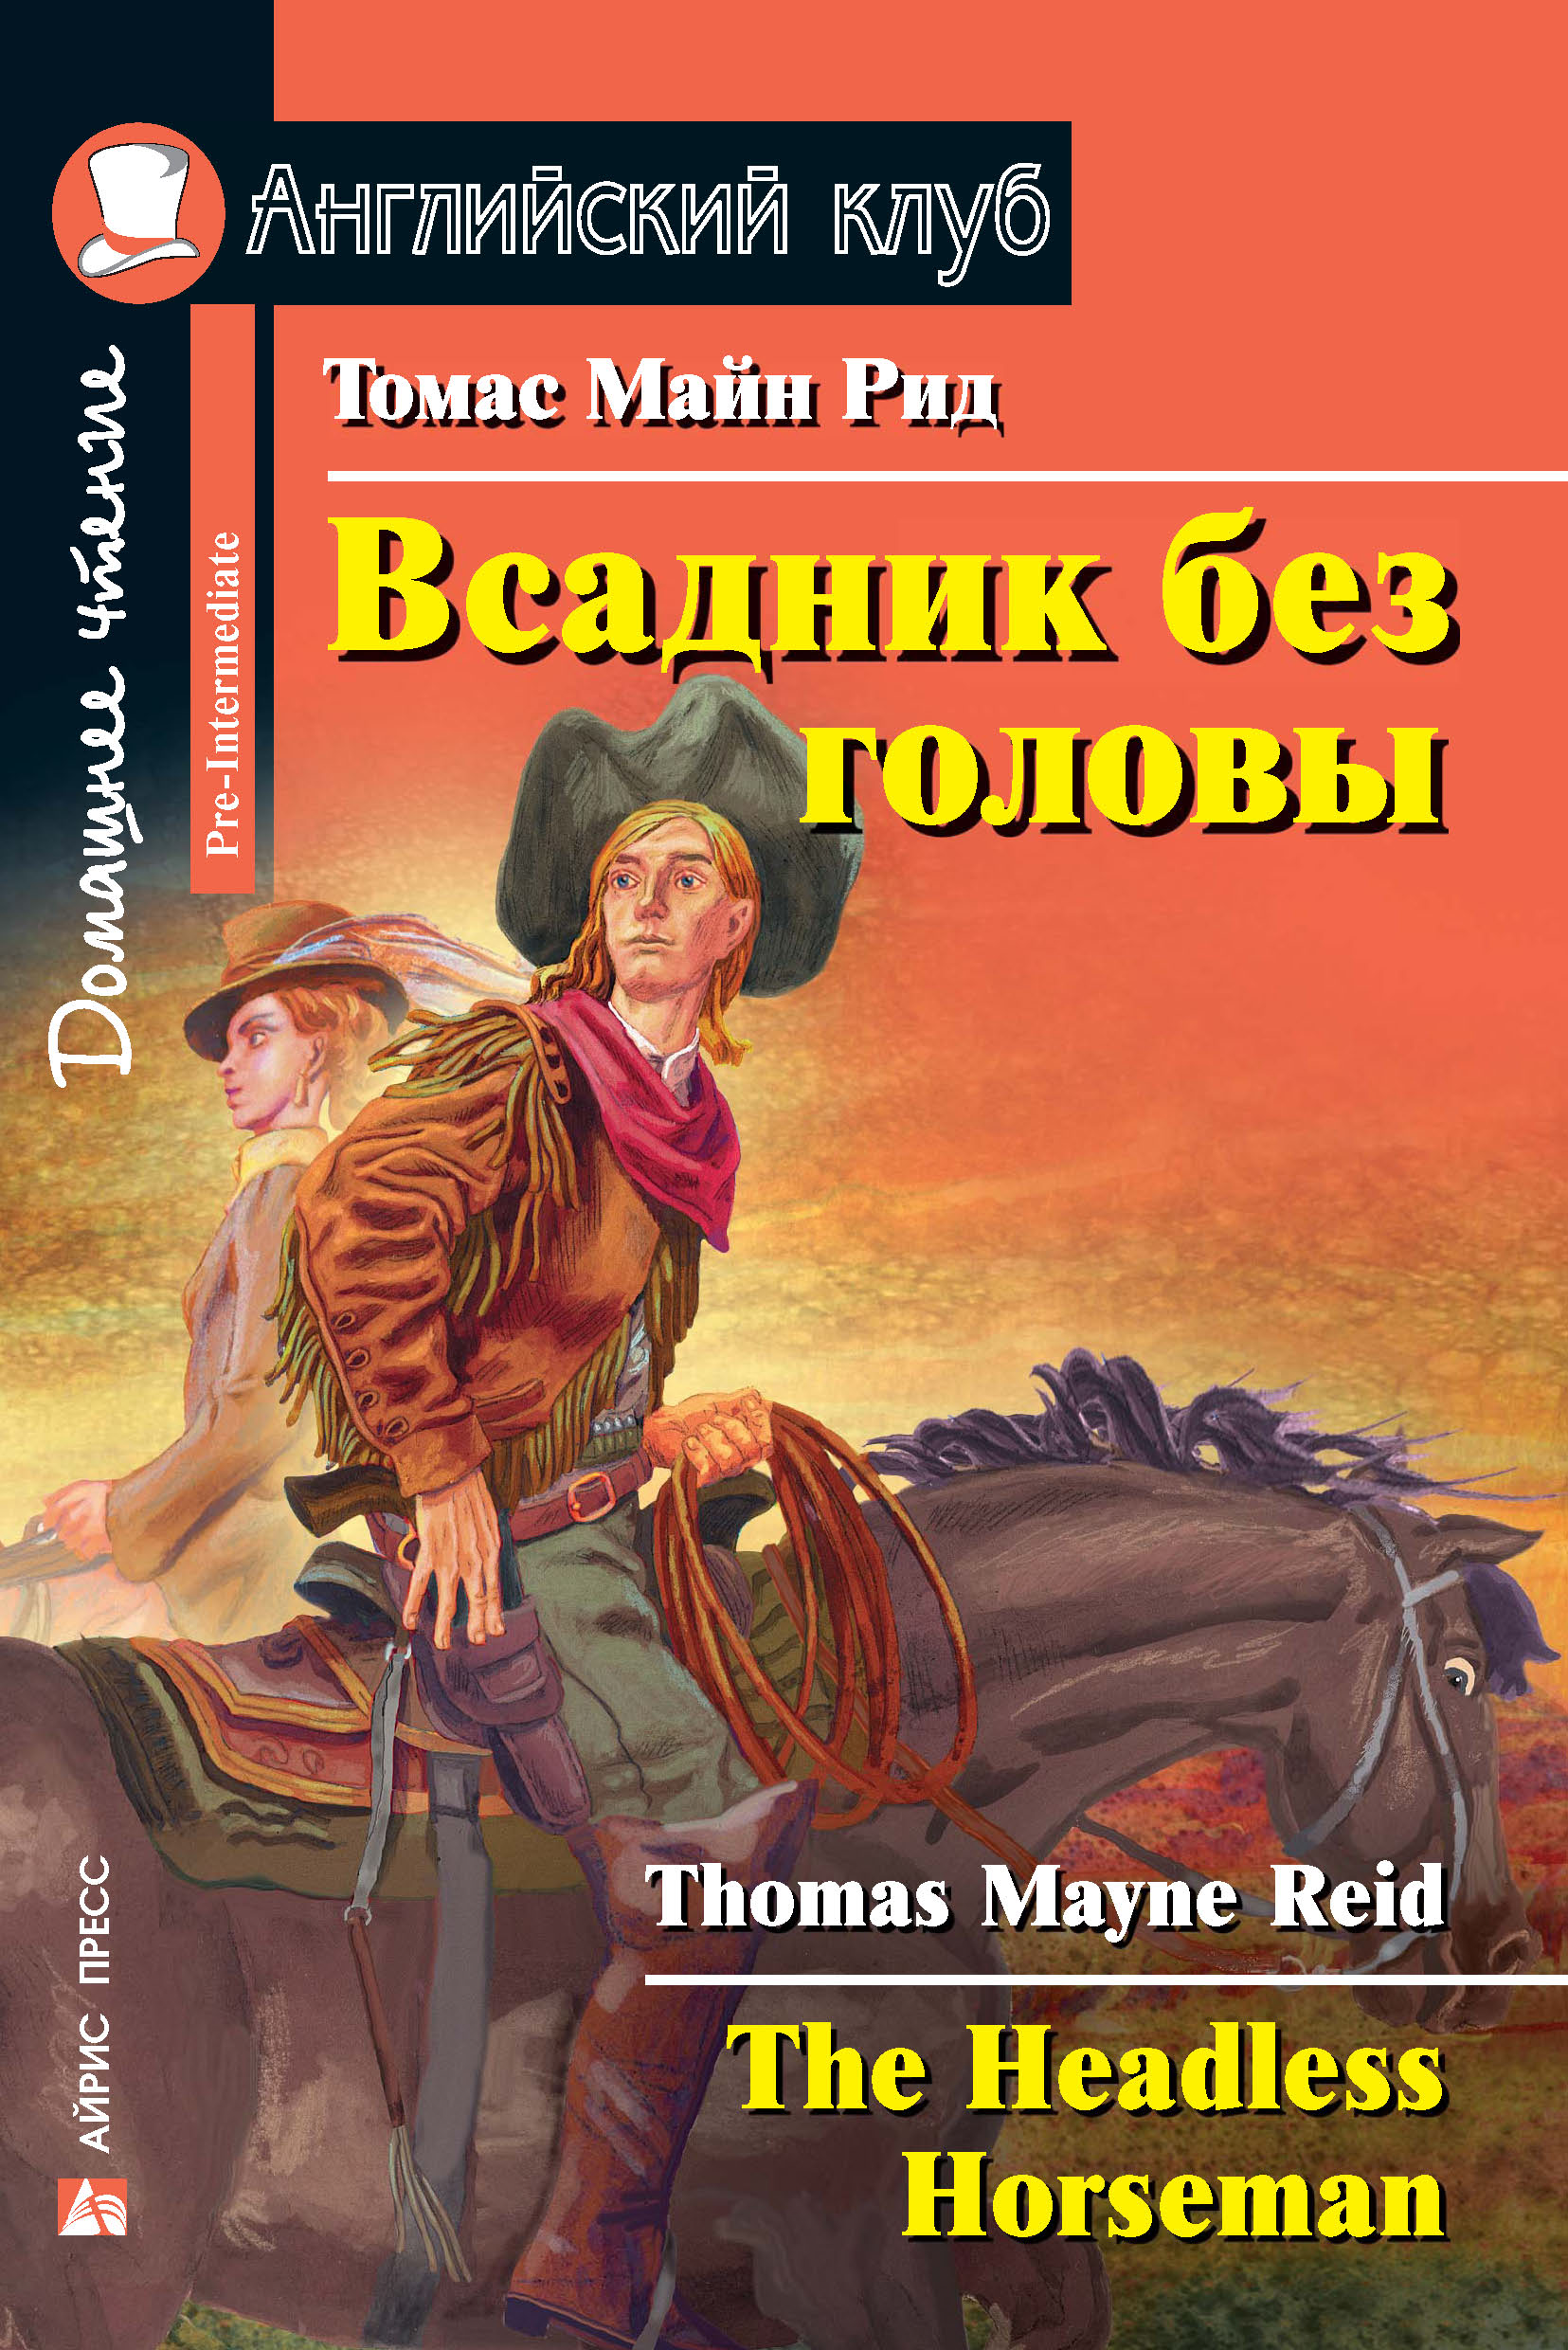 Всадник без головы / The Headless Horseman